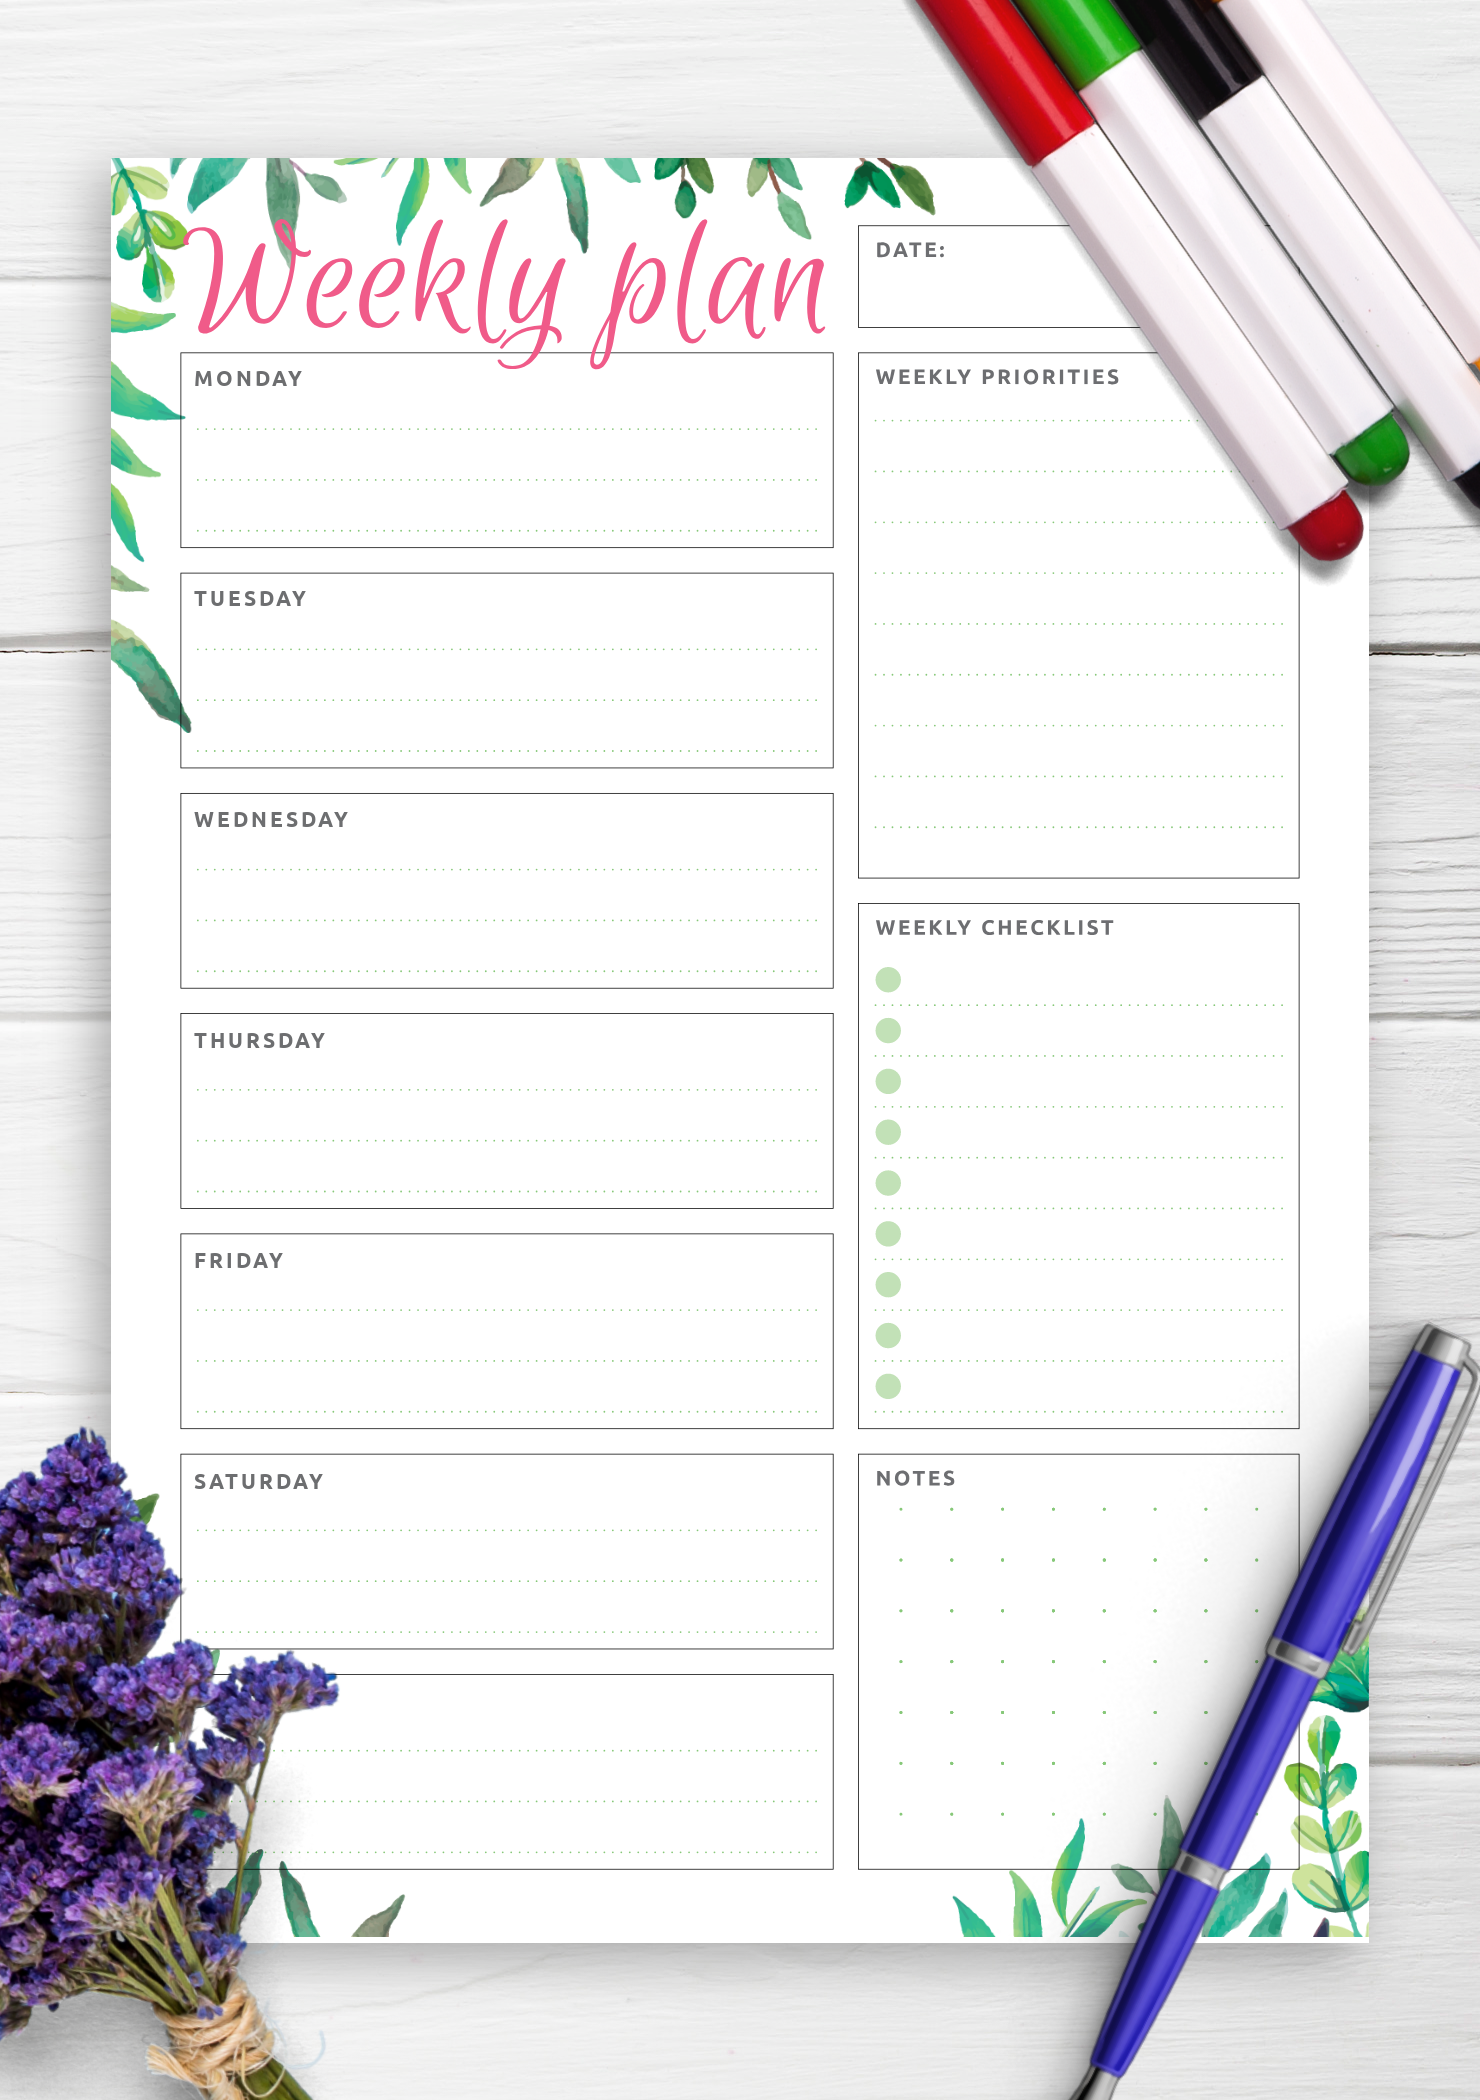 schedule template cute daily  Download Printable Weekly Plan & Checklist PDF - schedule template cute daily